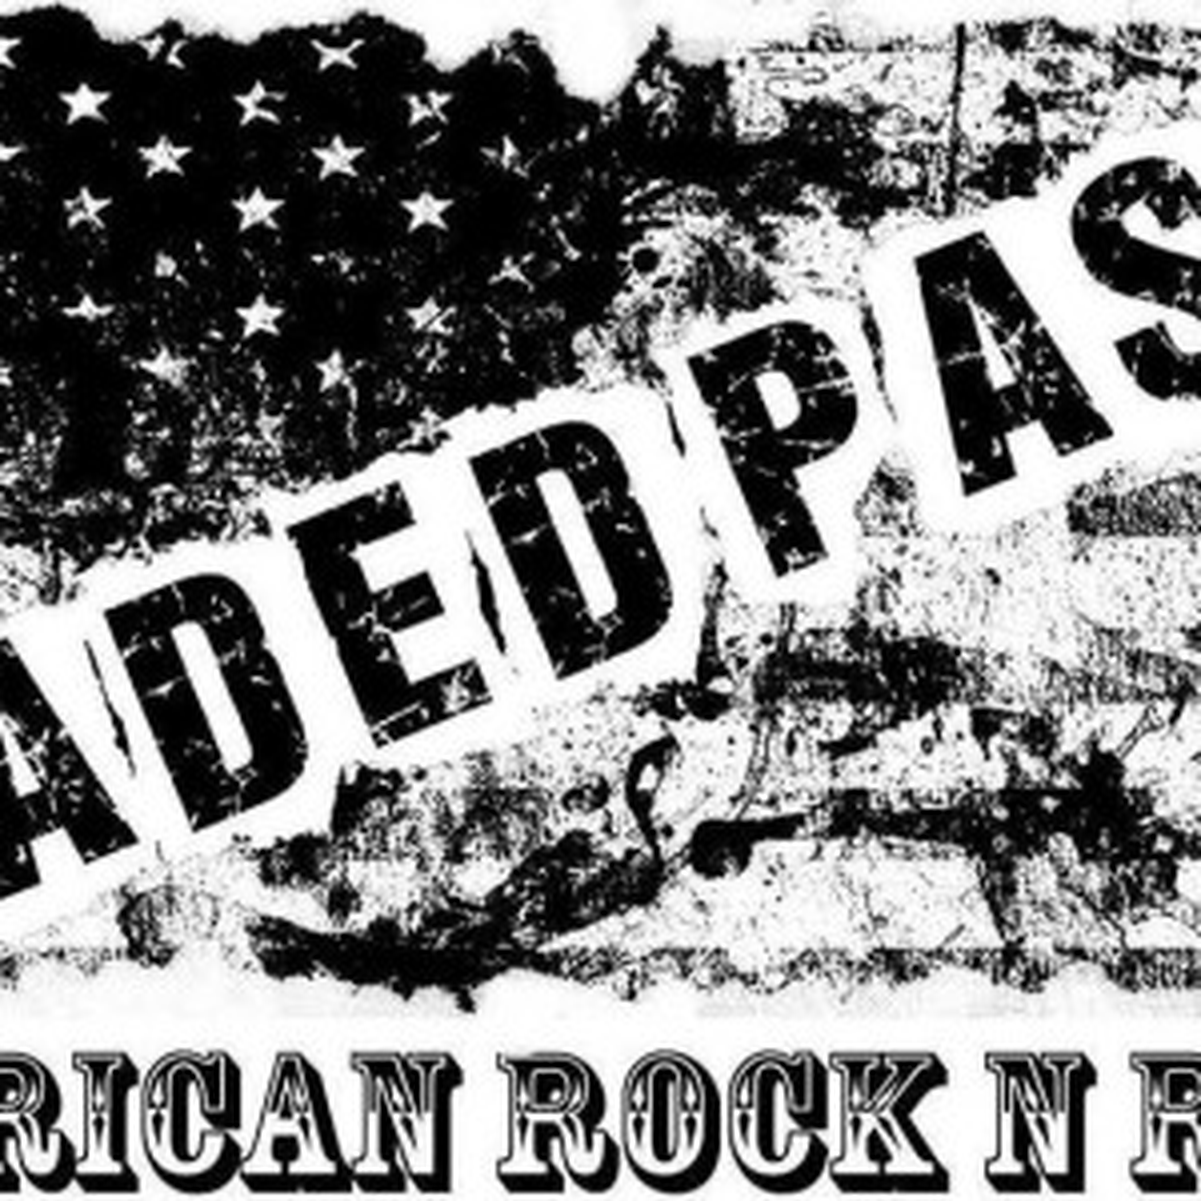 JADED PAST wiki, JADED PAST review, JADED PAST history, JADED PAST news